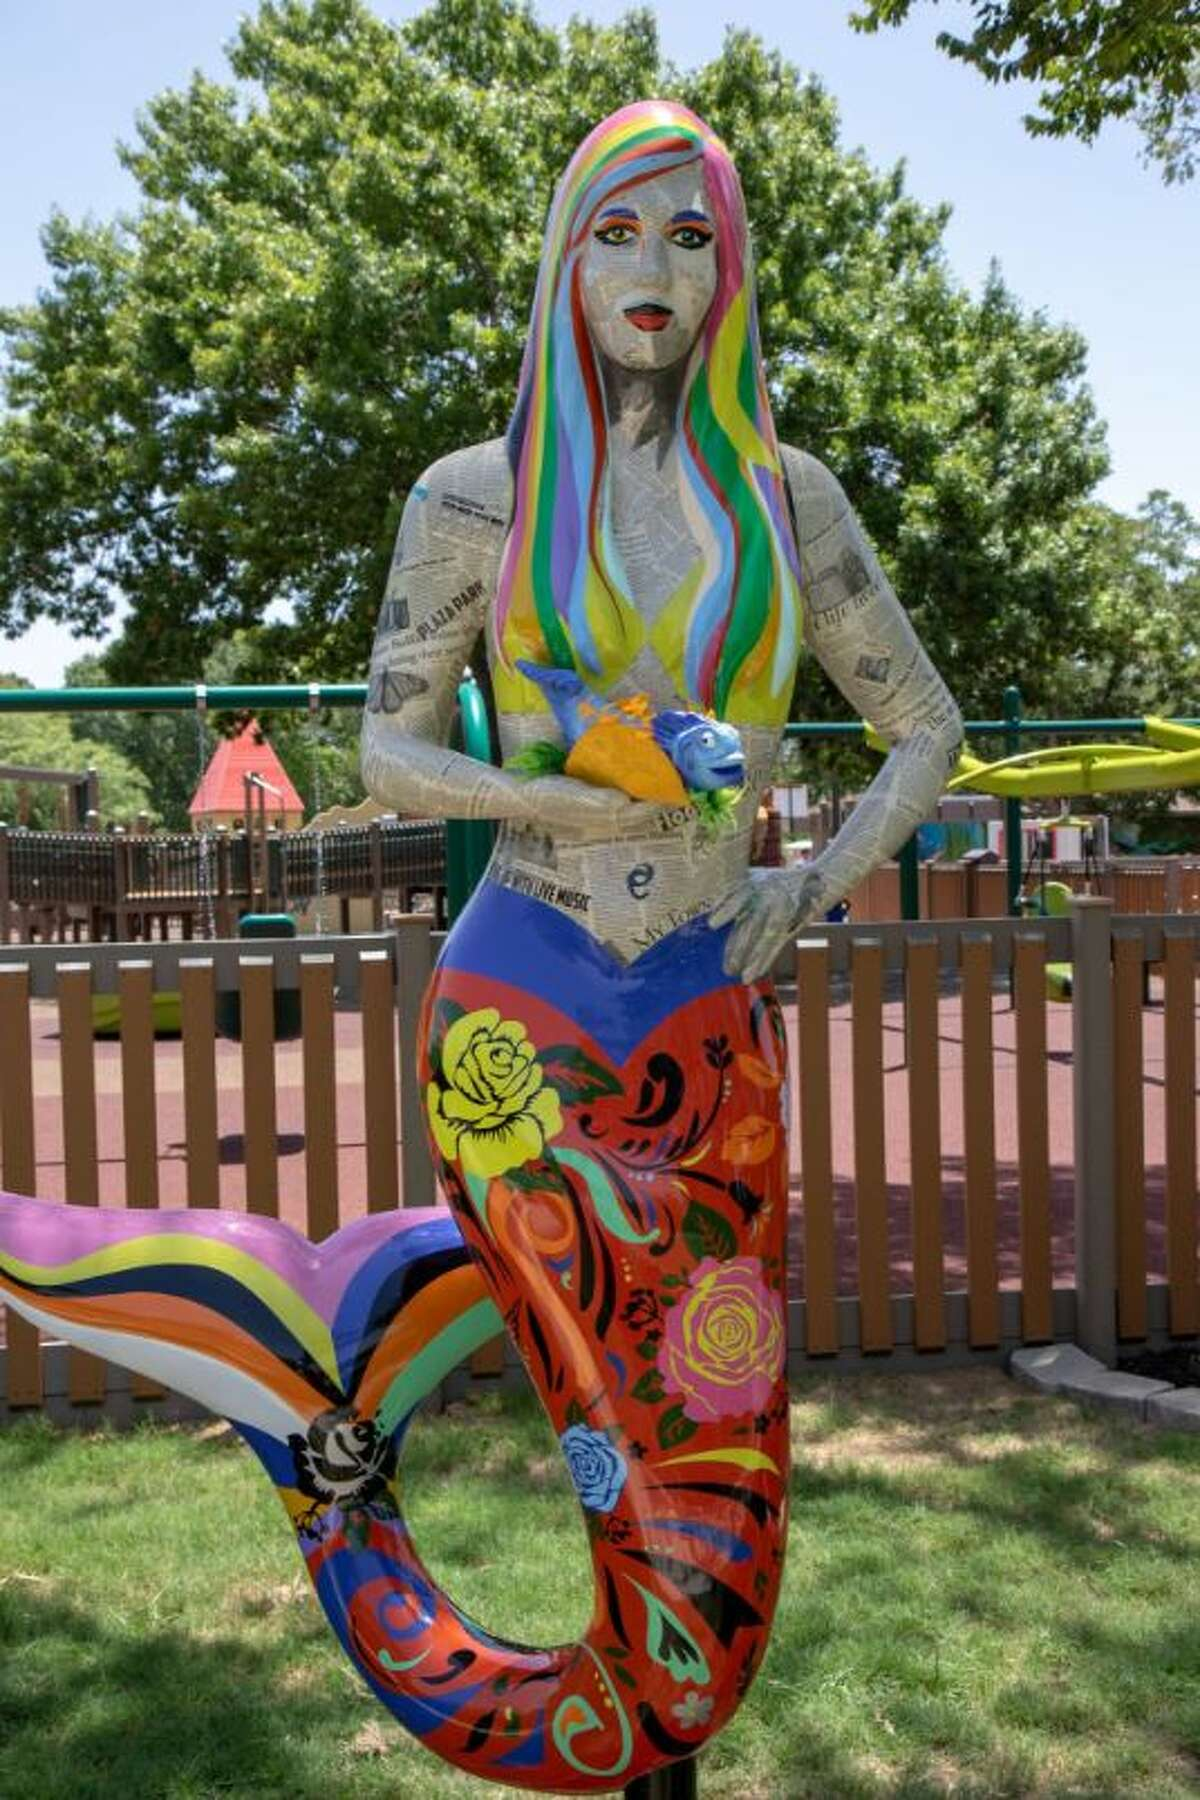 San Marcos has installed 10 mermaid statues in a nod to the city's history and an attempt to promote tourism. This is Blooming Brightly.